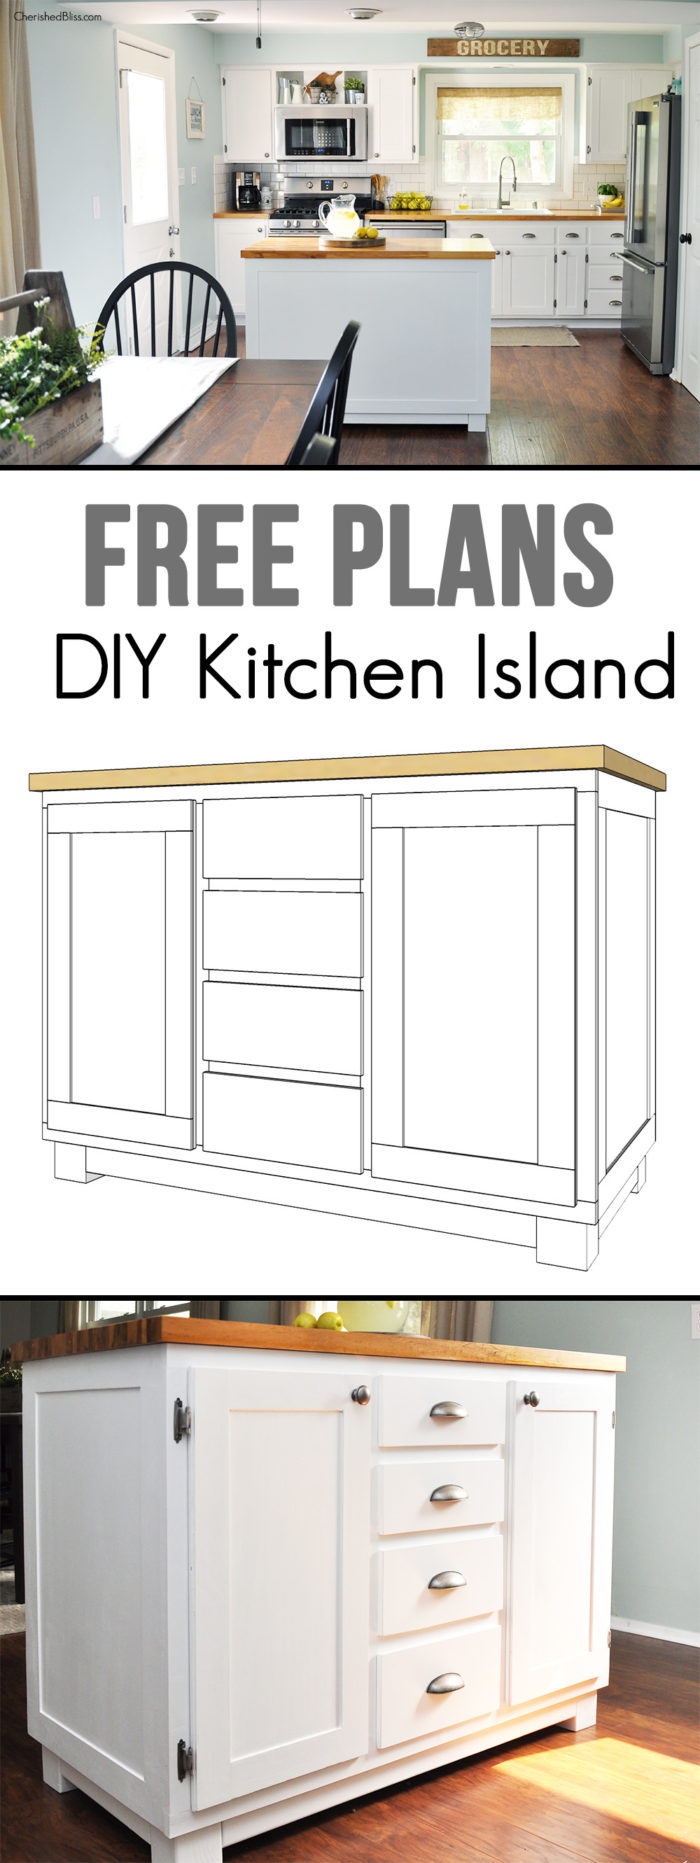 how to build a diy kitchen island - cherished bliss